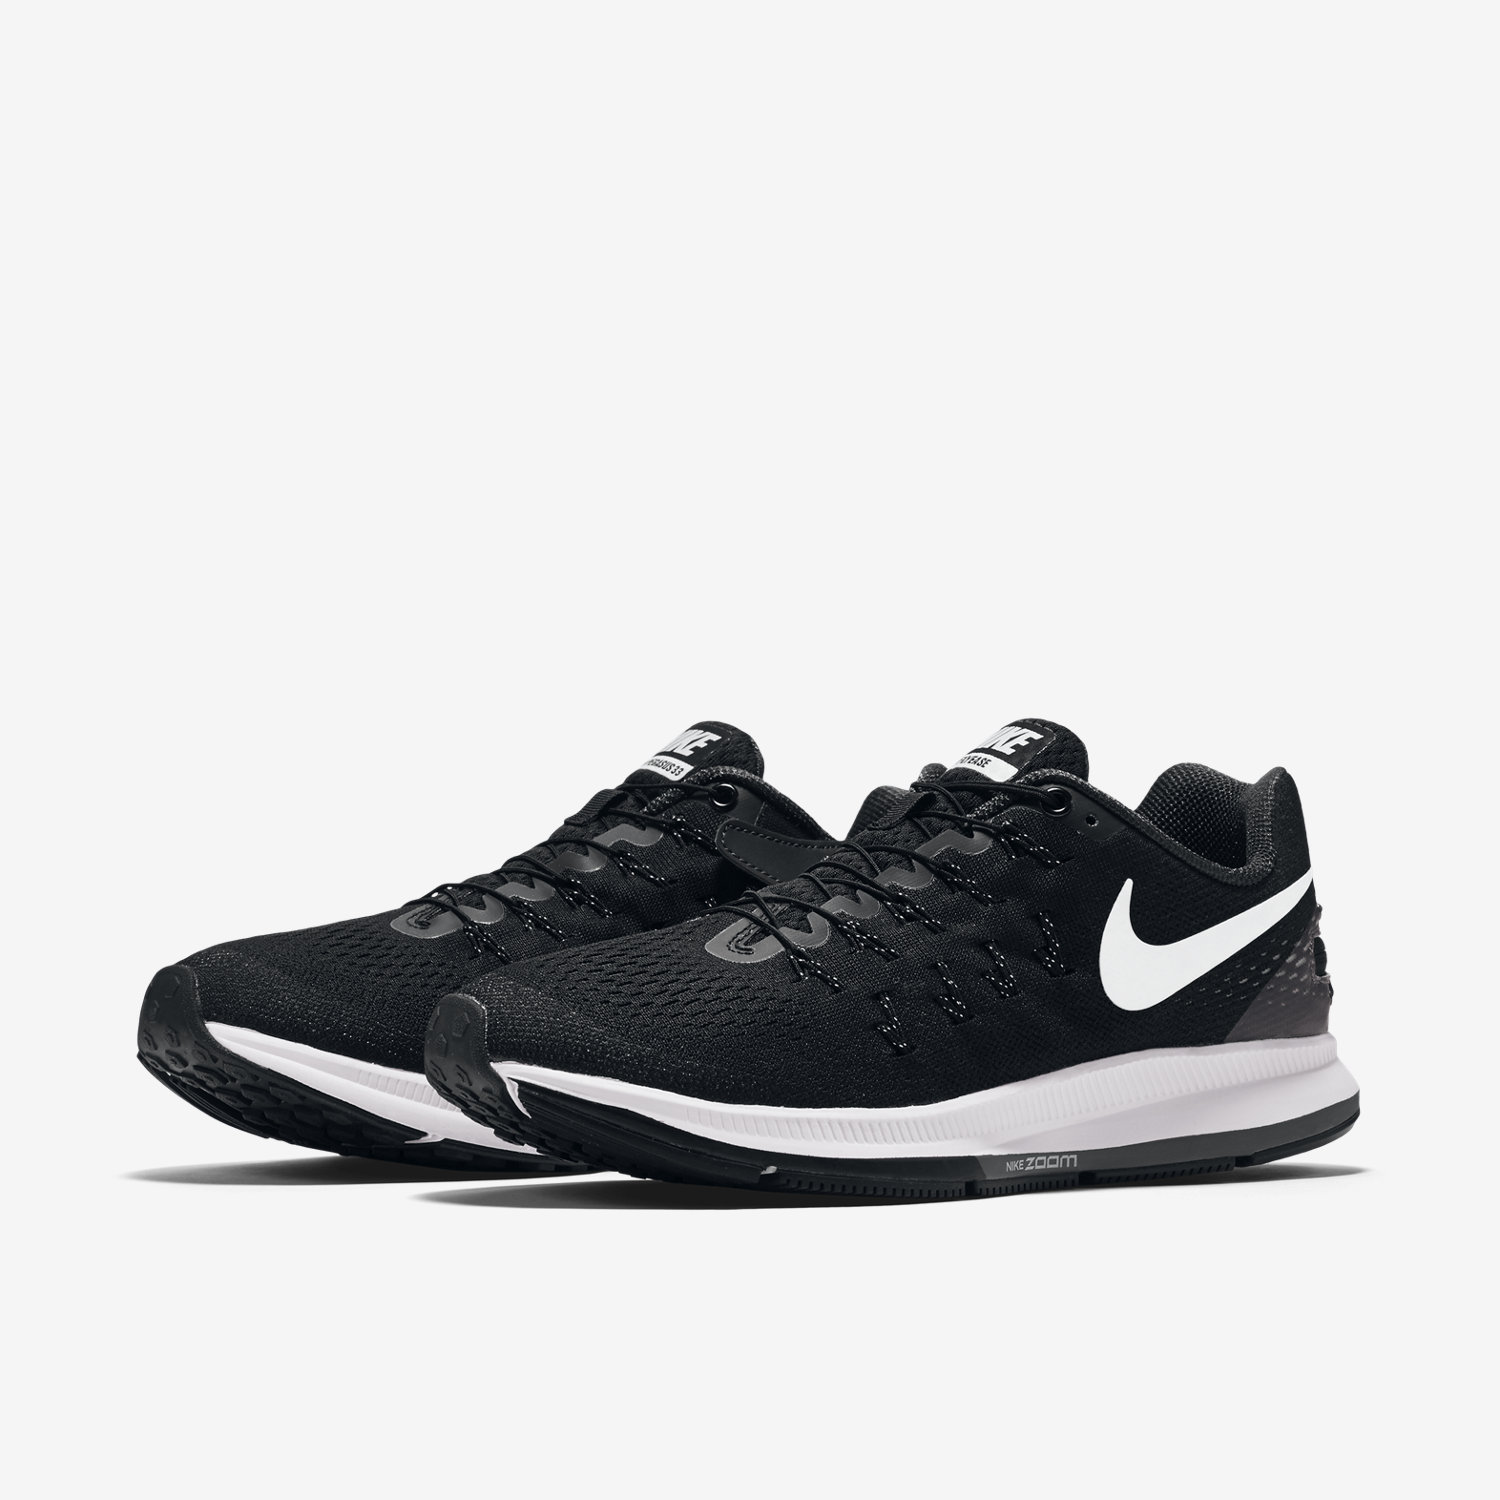 Nike Air Zoom Structure 20 Run Shoes SS17 Chain Reaction Cycles